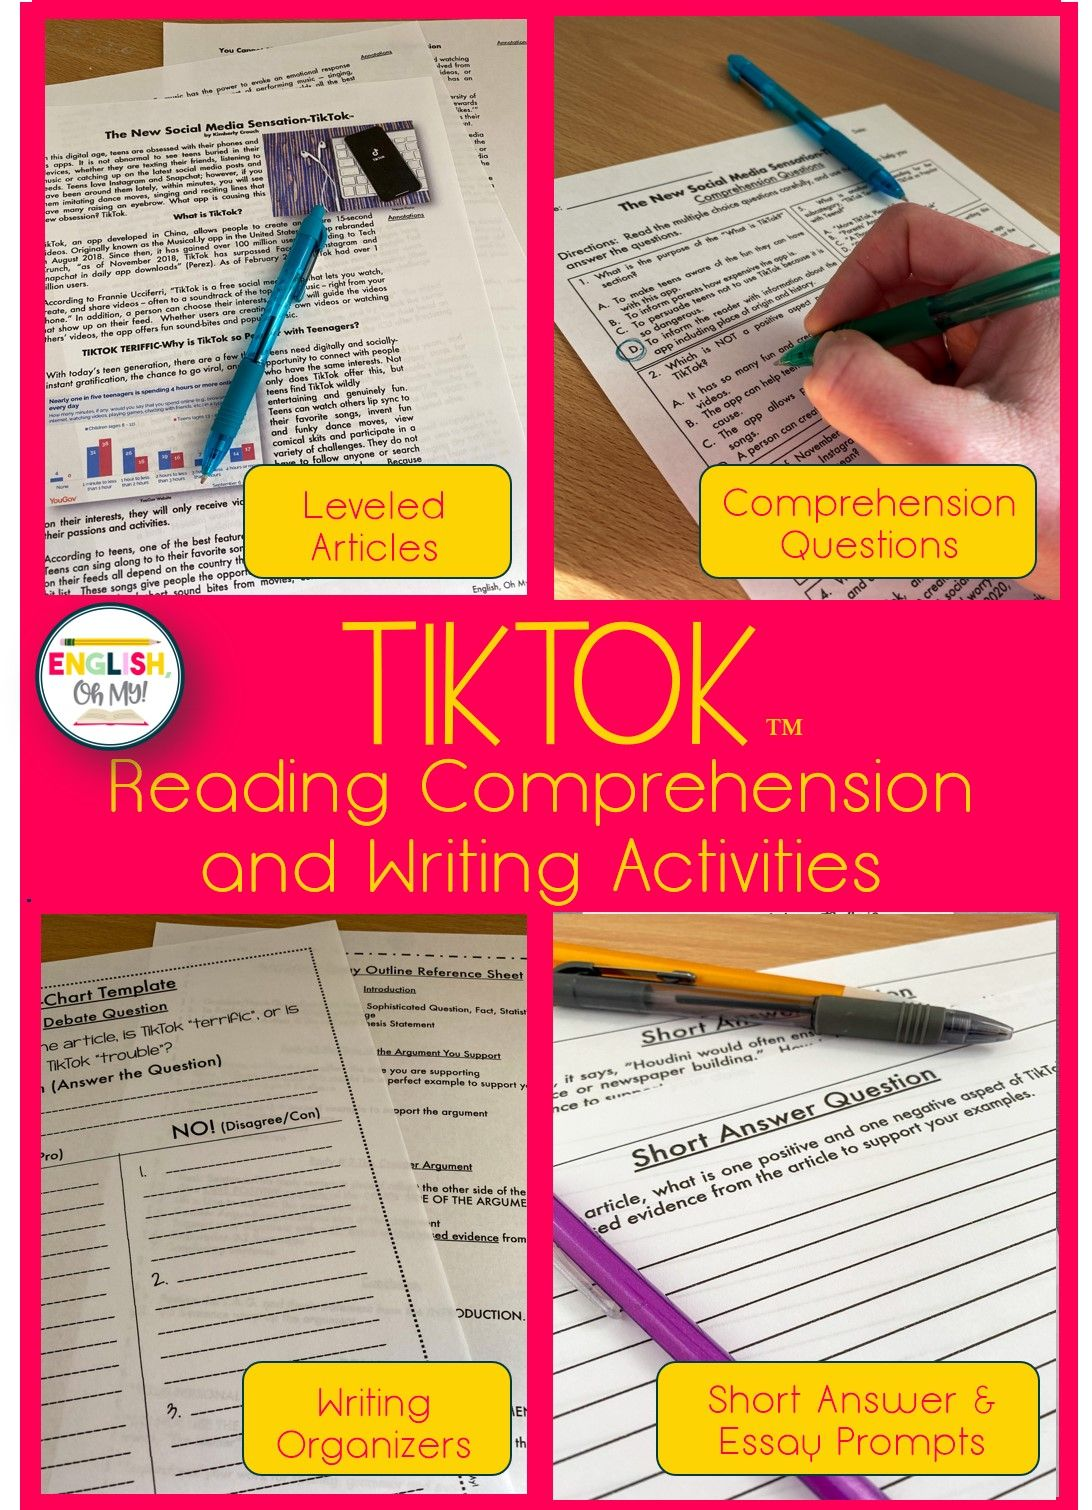 Tiktok Article Amp Reading Comprehension Questions